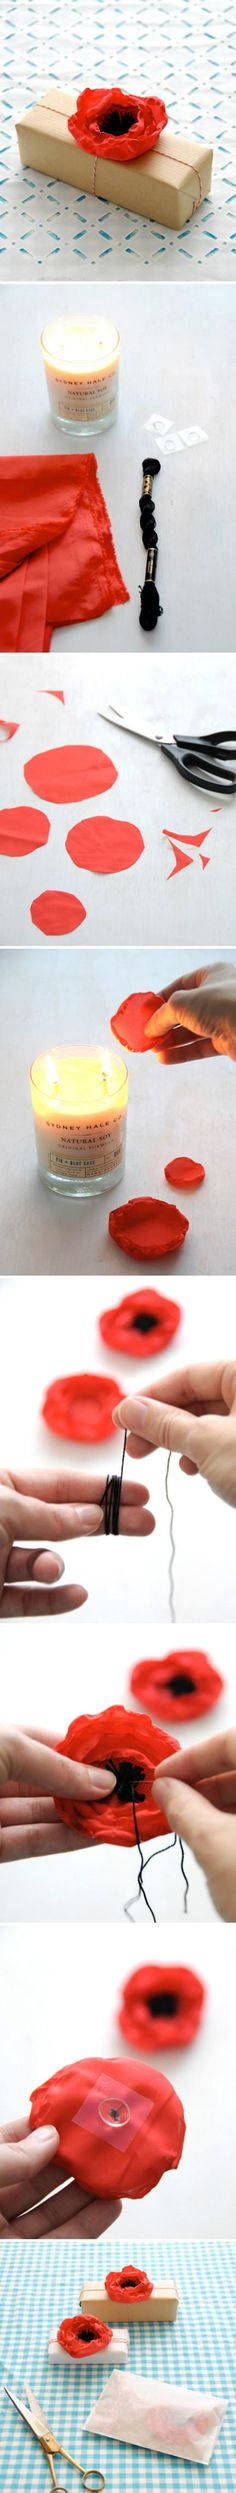 DIY Poppies: try making a bunch of these and sticking them to a foam ball with wire/ pins as a homemade bouquet